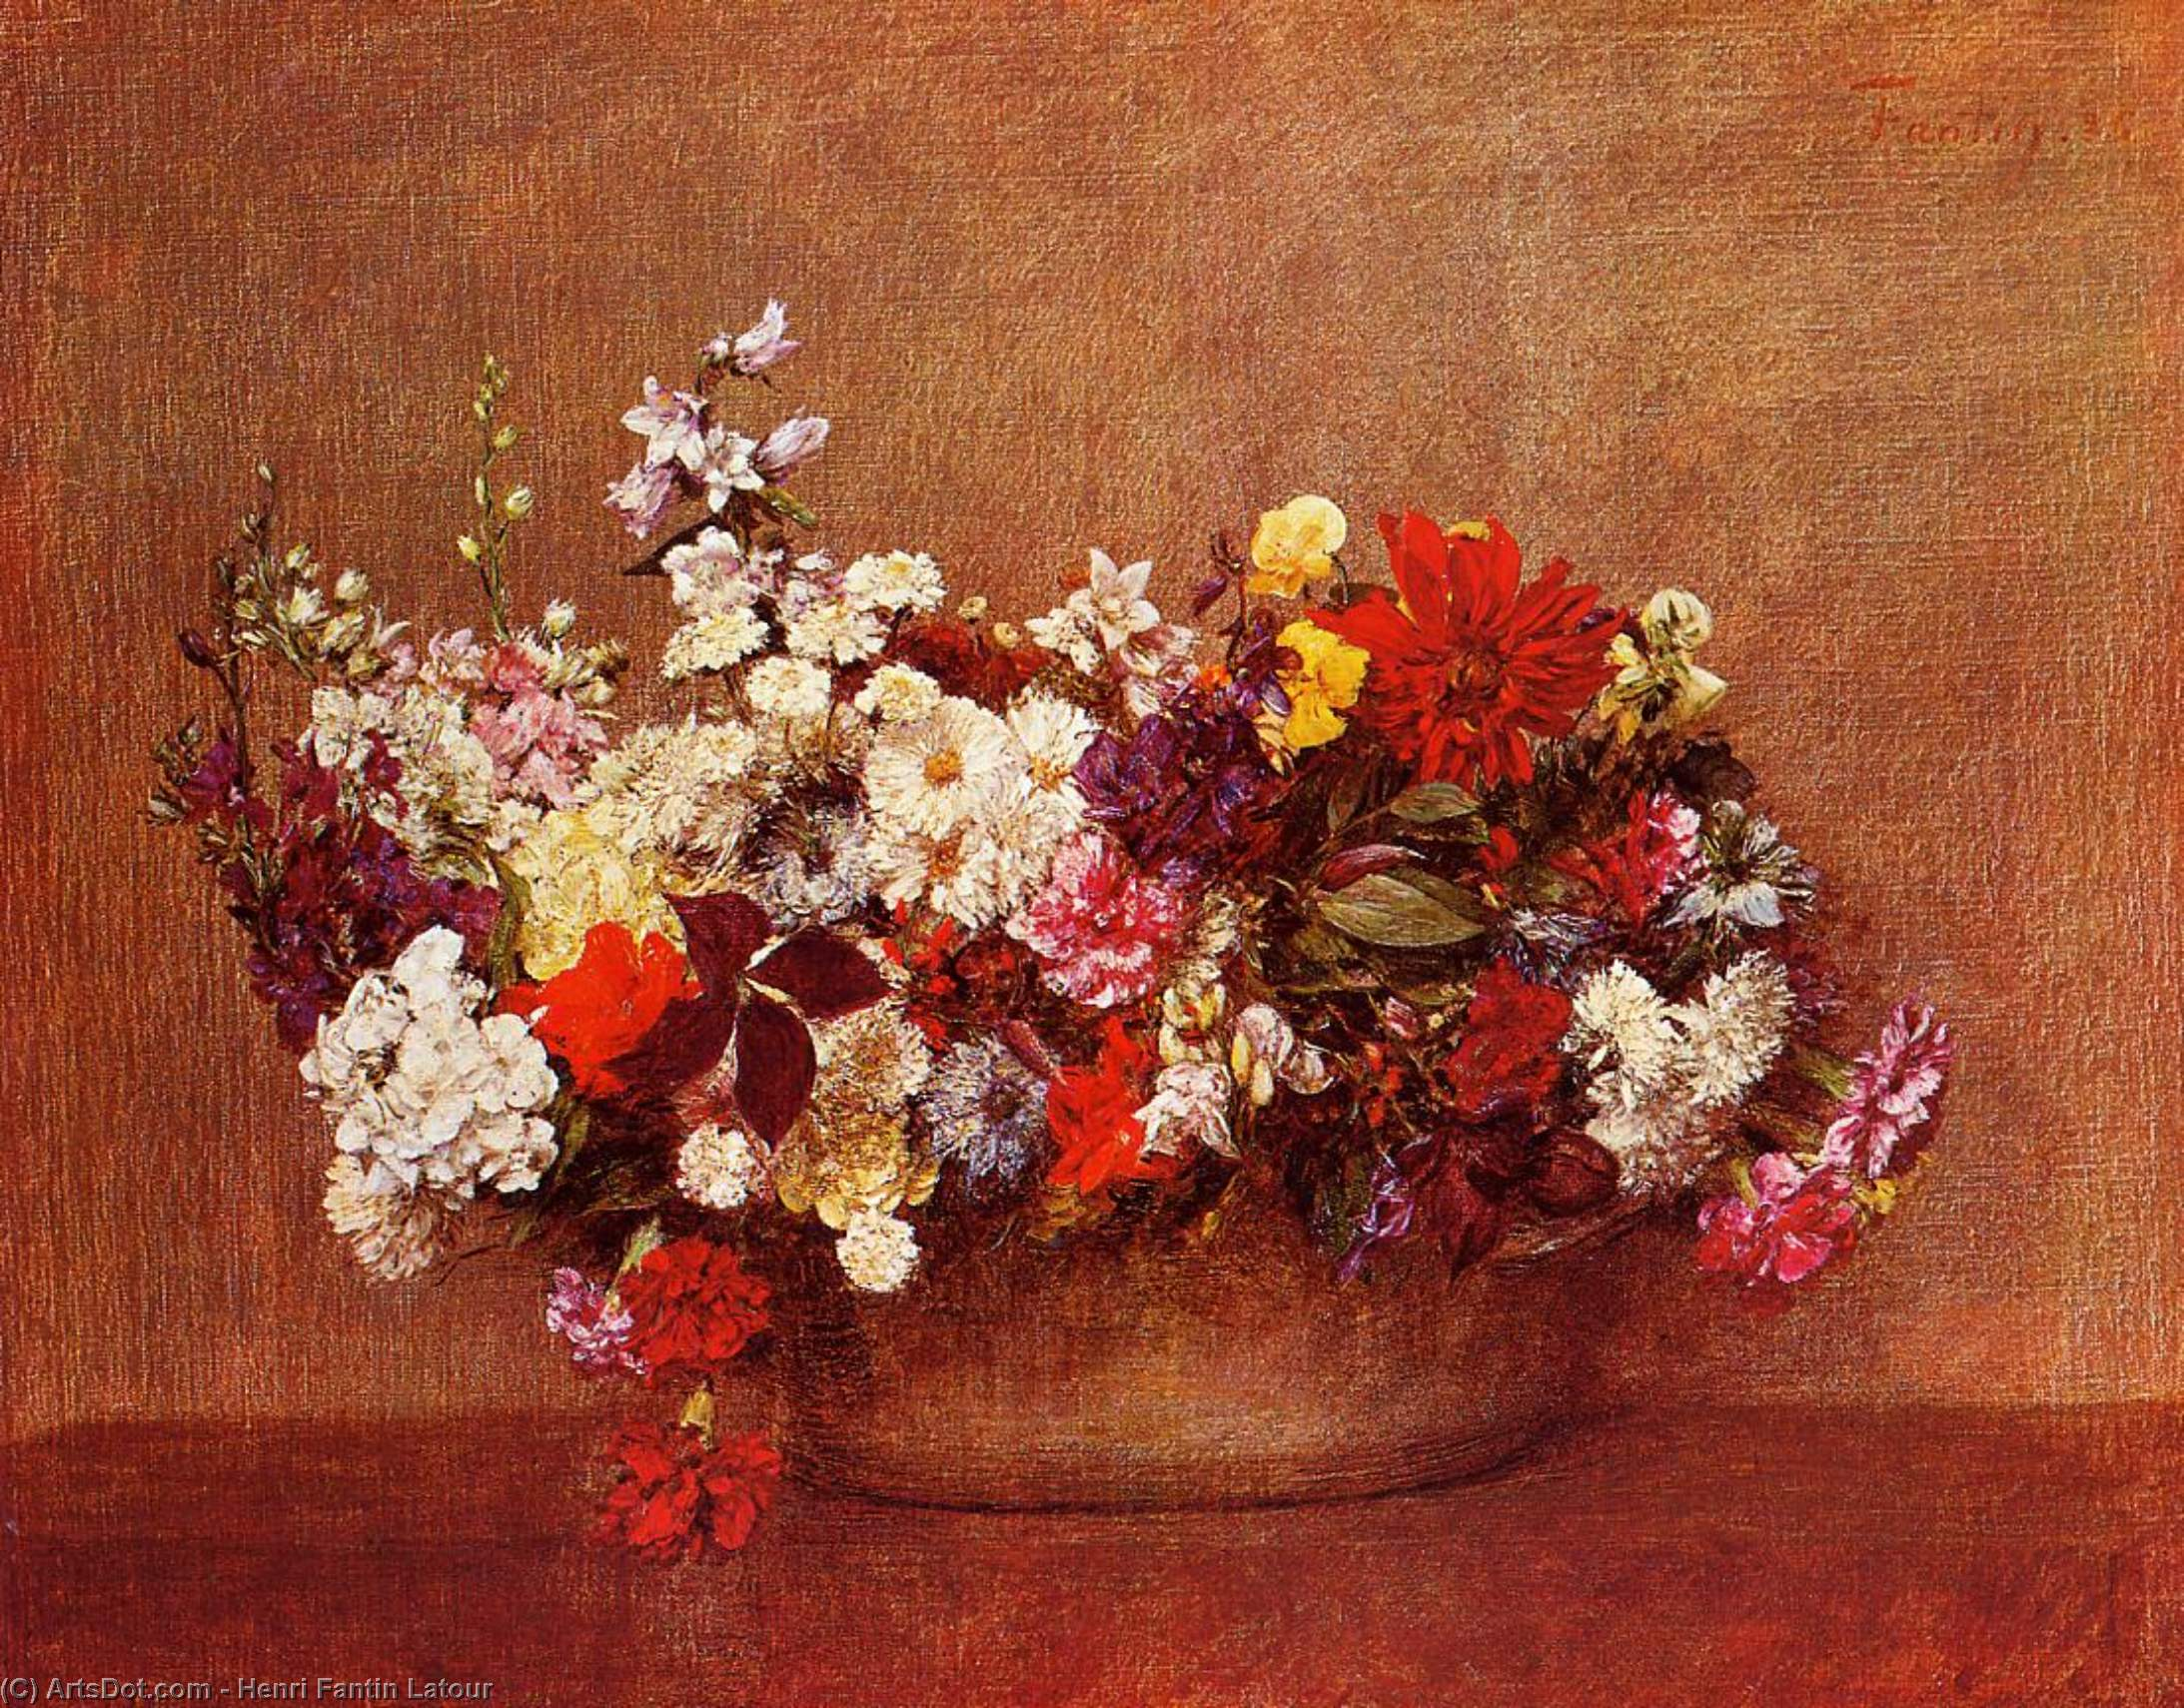 Flowers in a Bowl, Oil by Henri Fantin Latour (1836-1904, France)